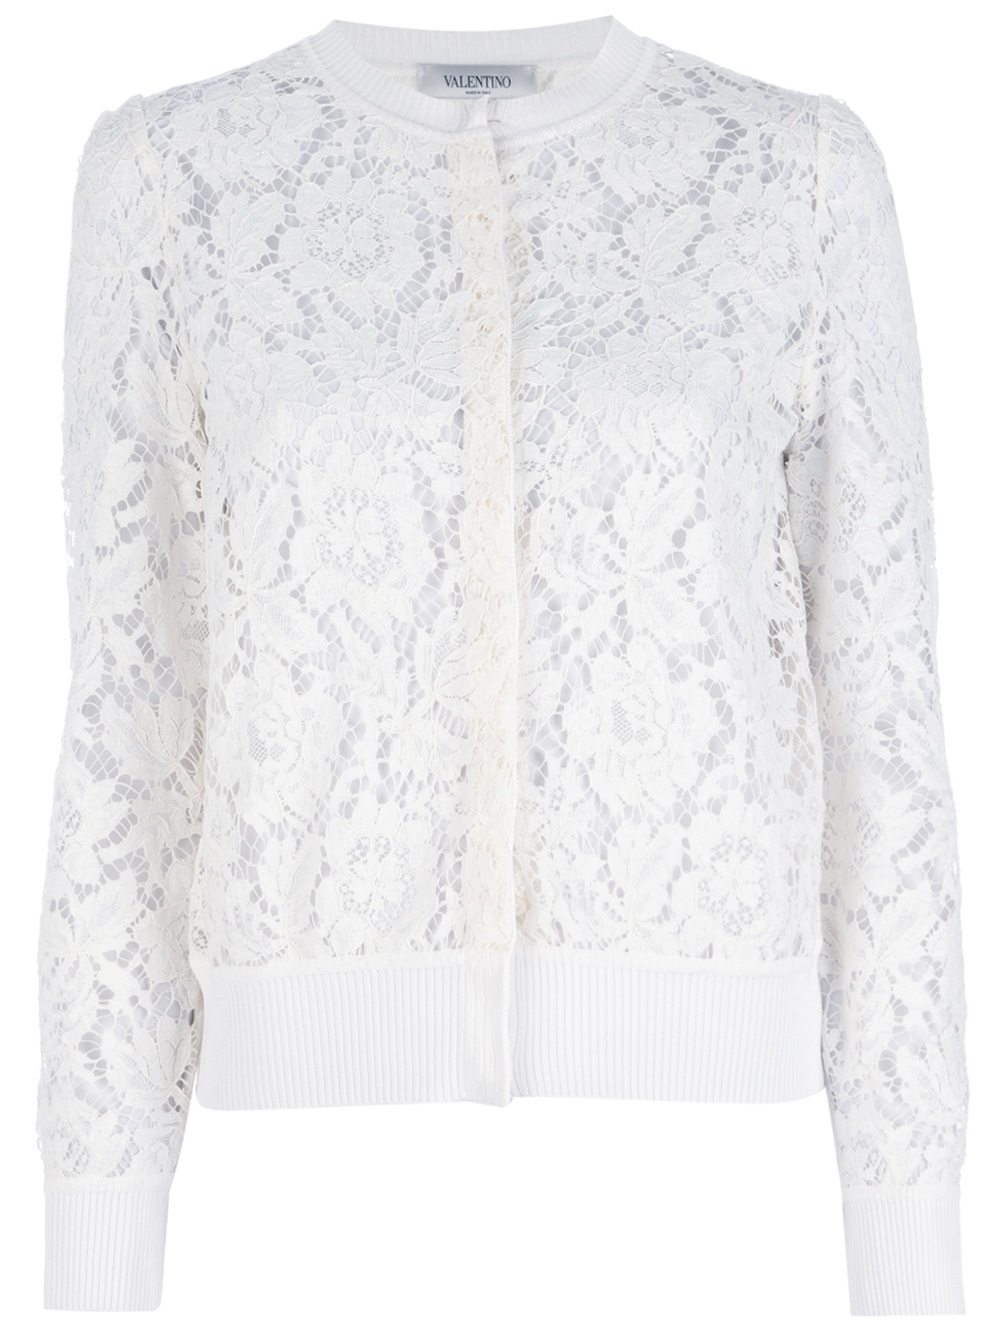 Valentino Lace Cardigan In White Lyst